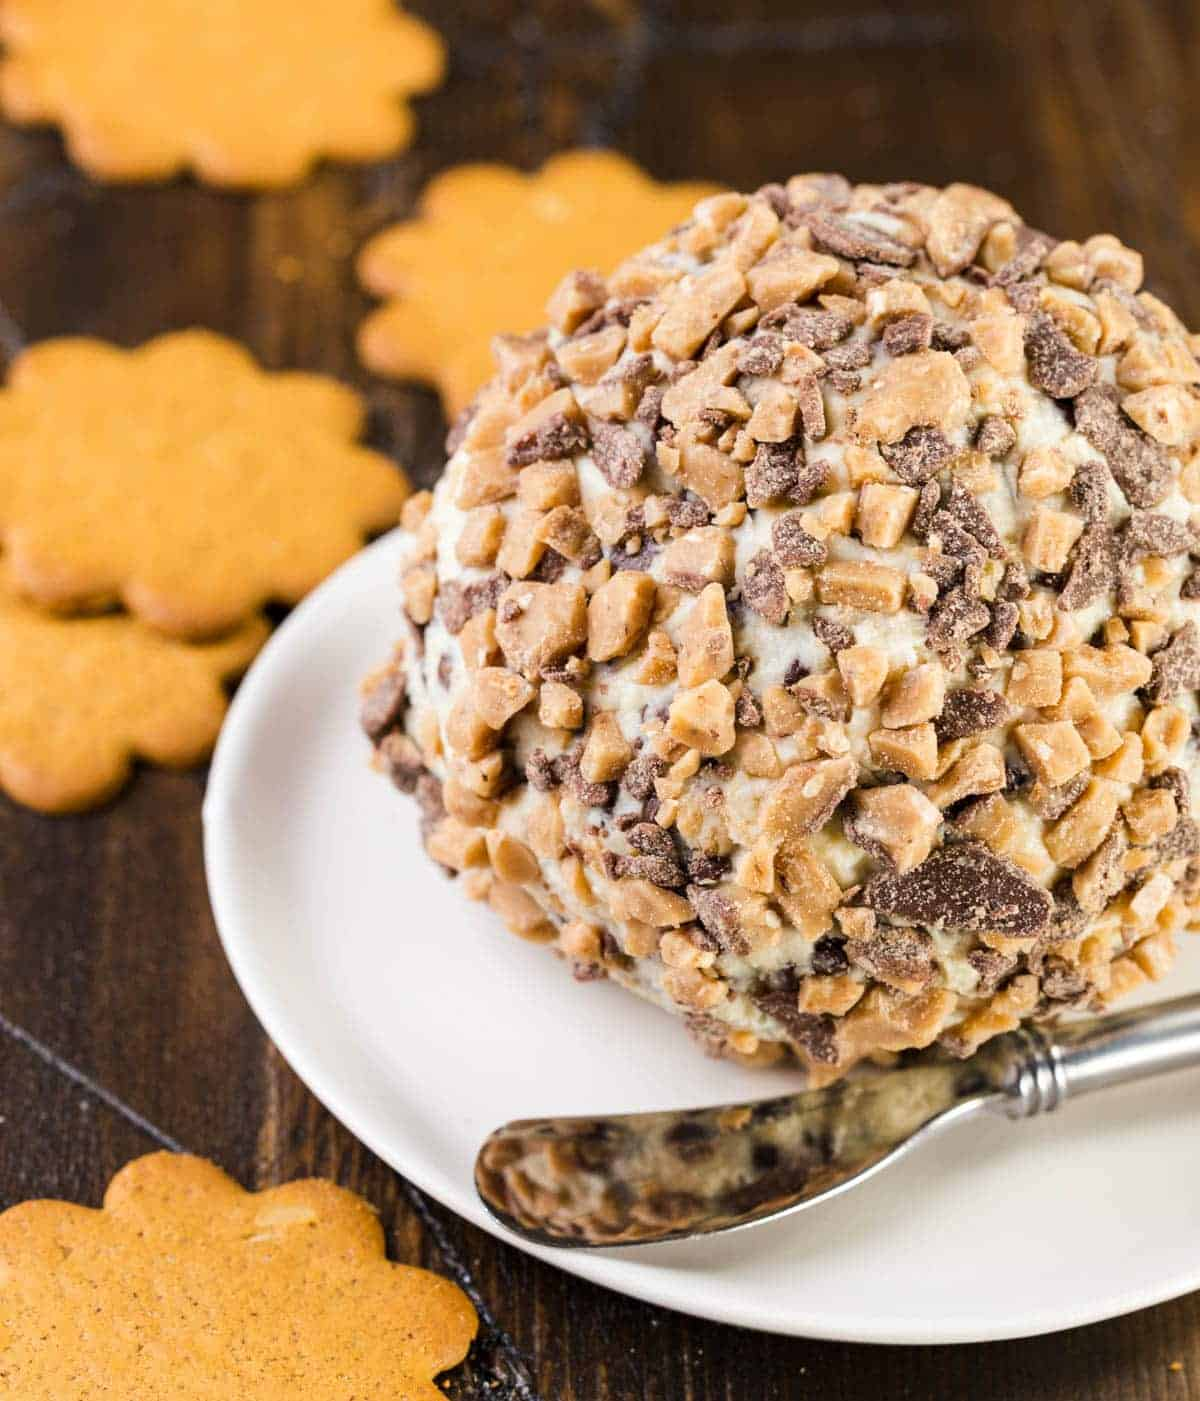 Need a sweet for a crowd? This Chocolate Chip Cheese Ball is the perfect dessert for any gathering made with pantry staples!